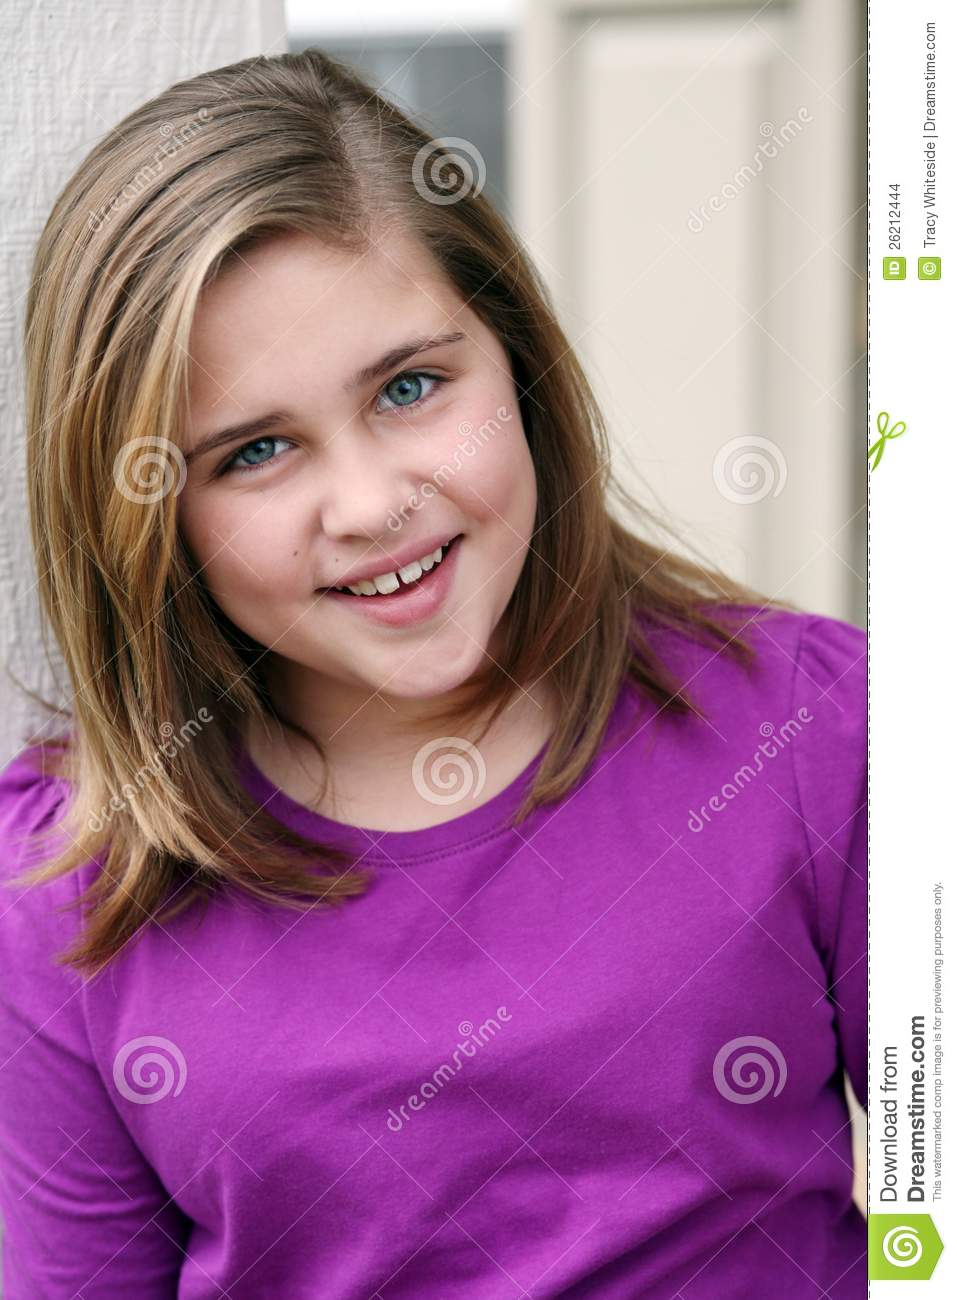 Headshot of preteen caucasian girl smiling.